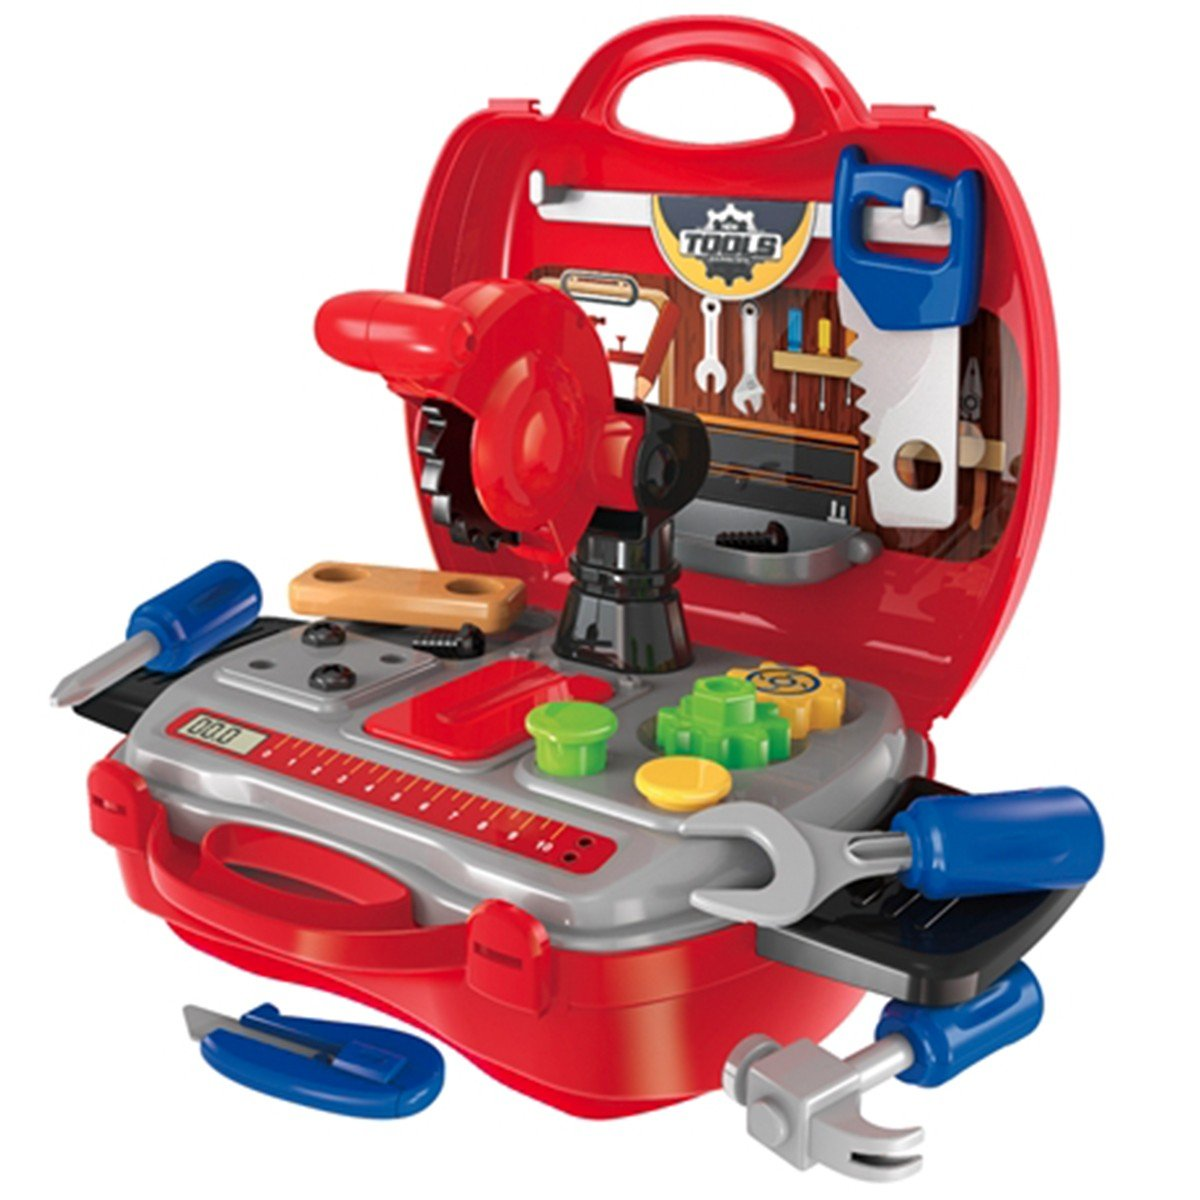 Toyshine DIY Portable Tool Set Toy with Briefcase, 19 Accessories